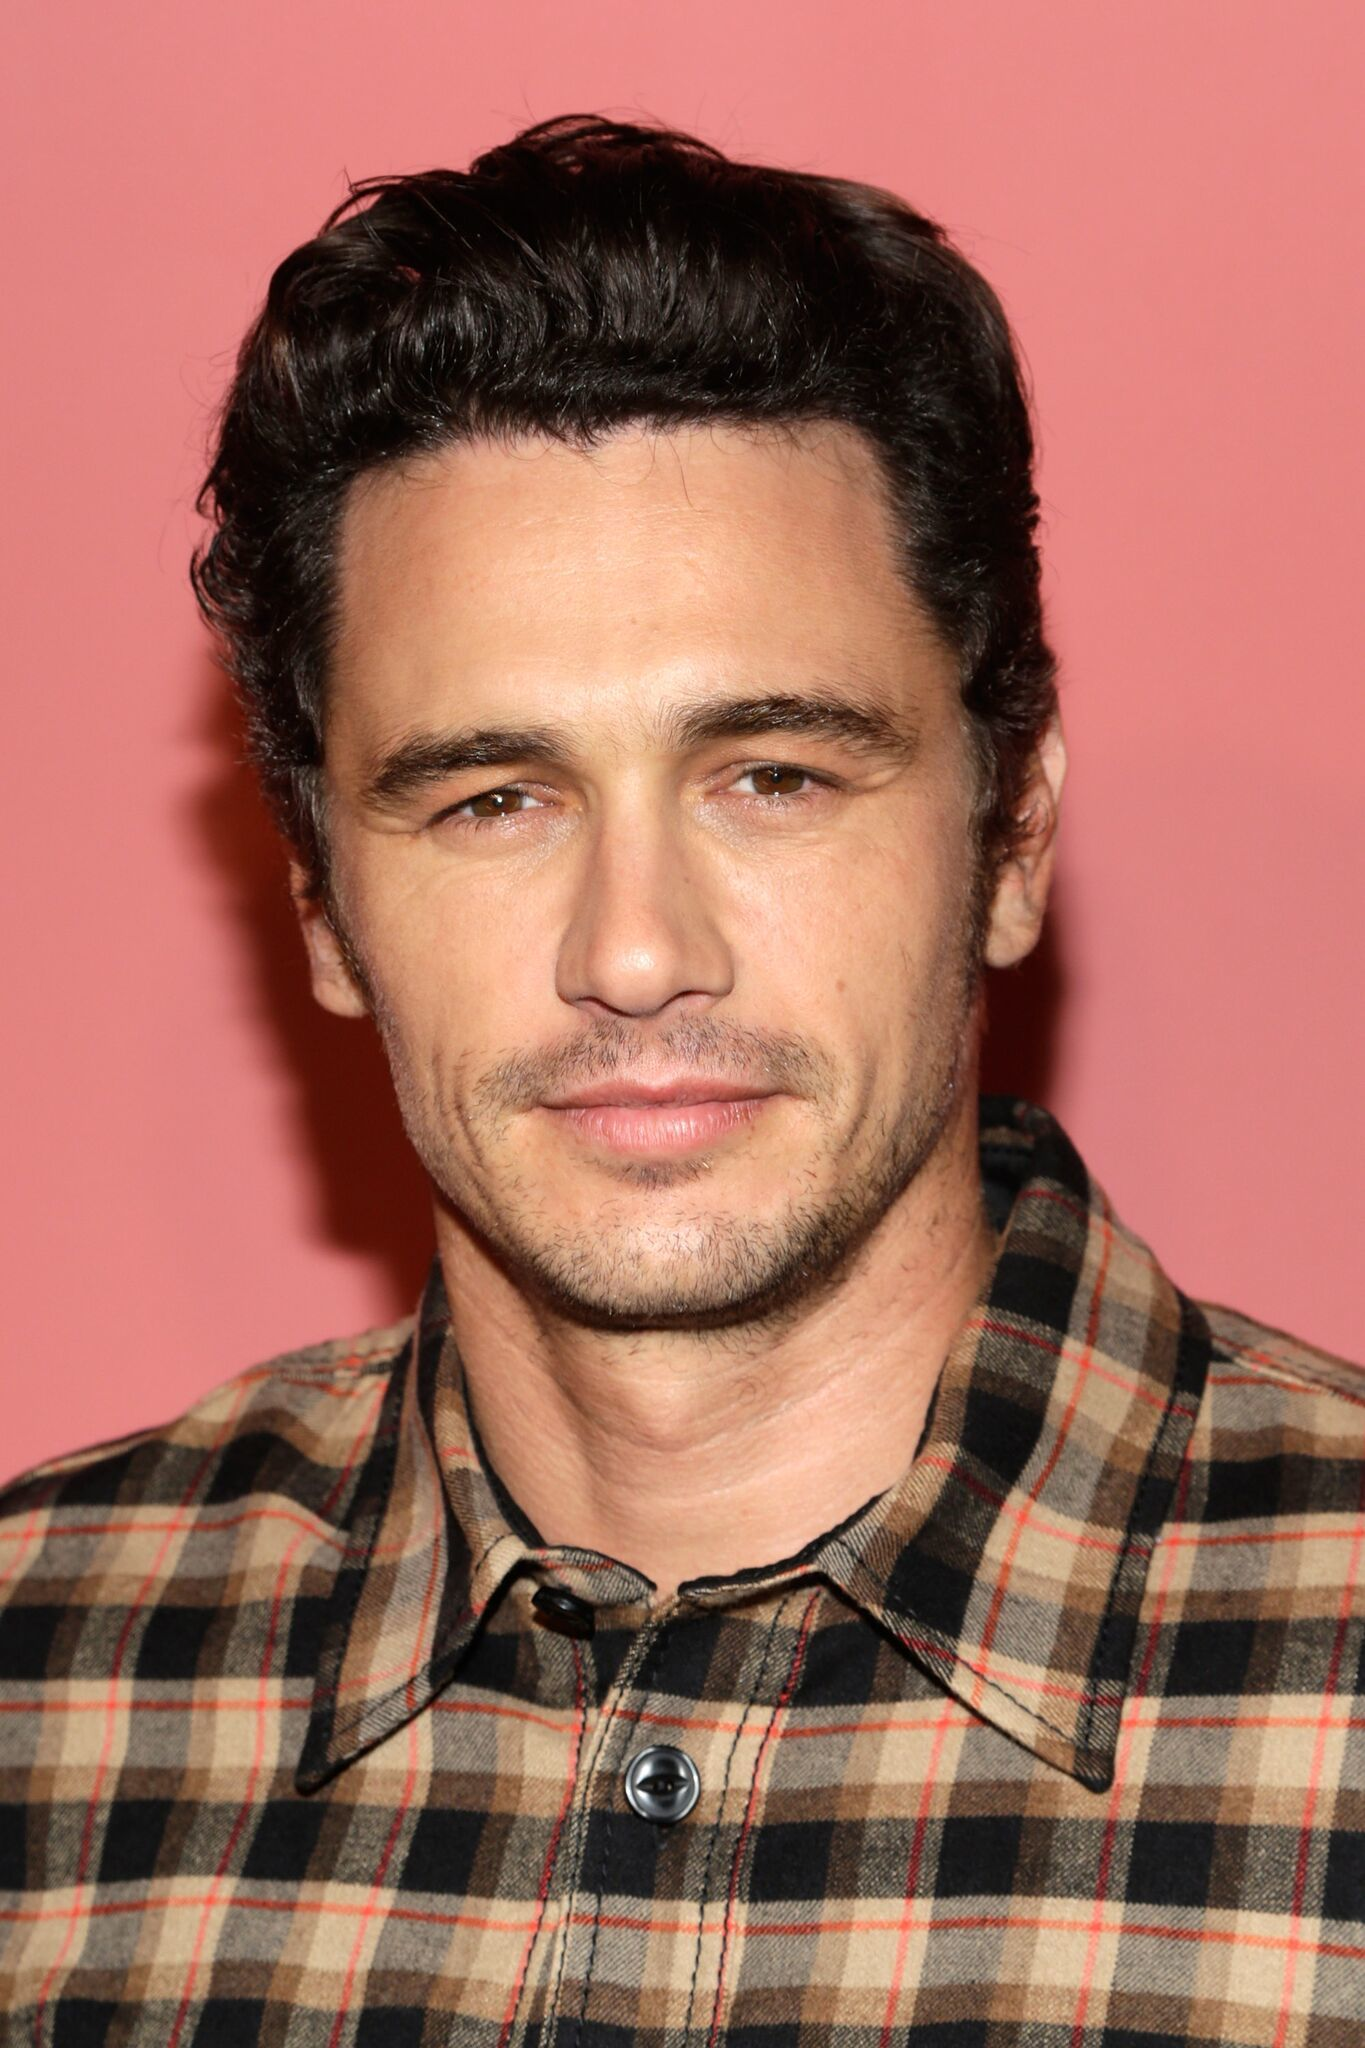 James Franco - IMDbPro